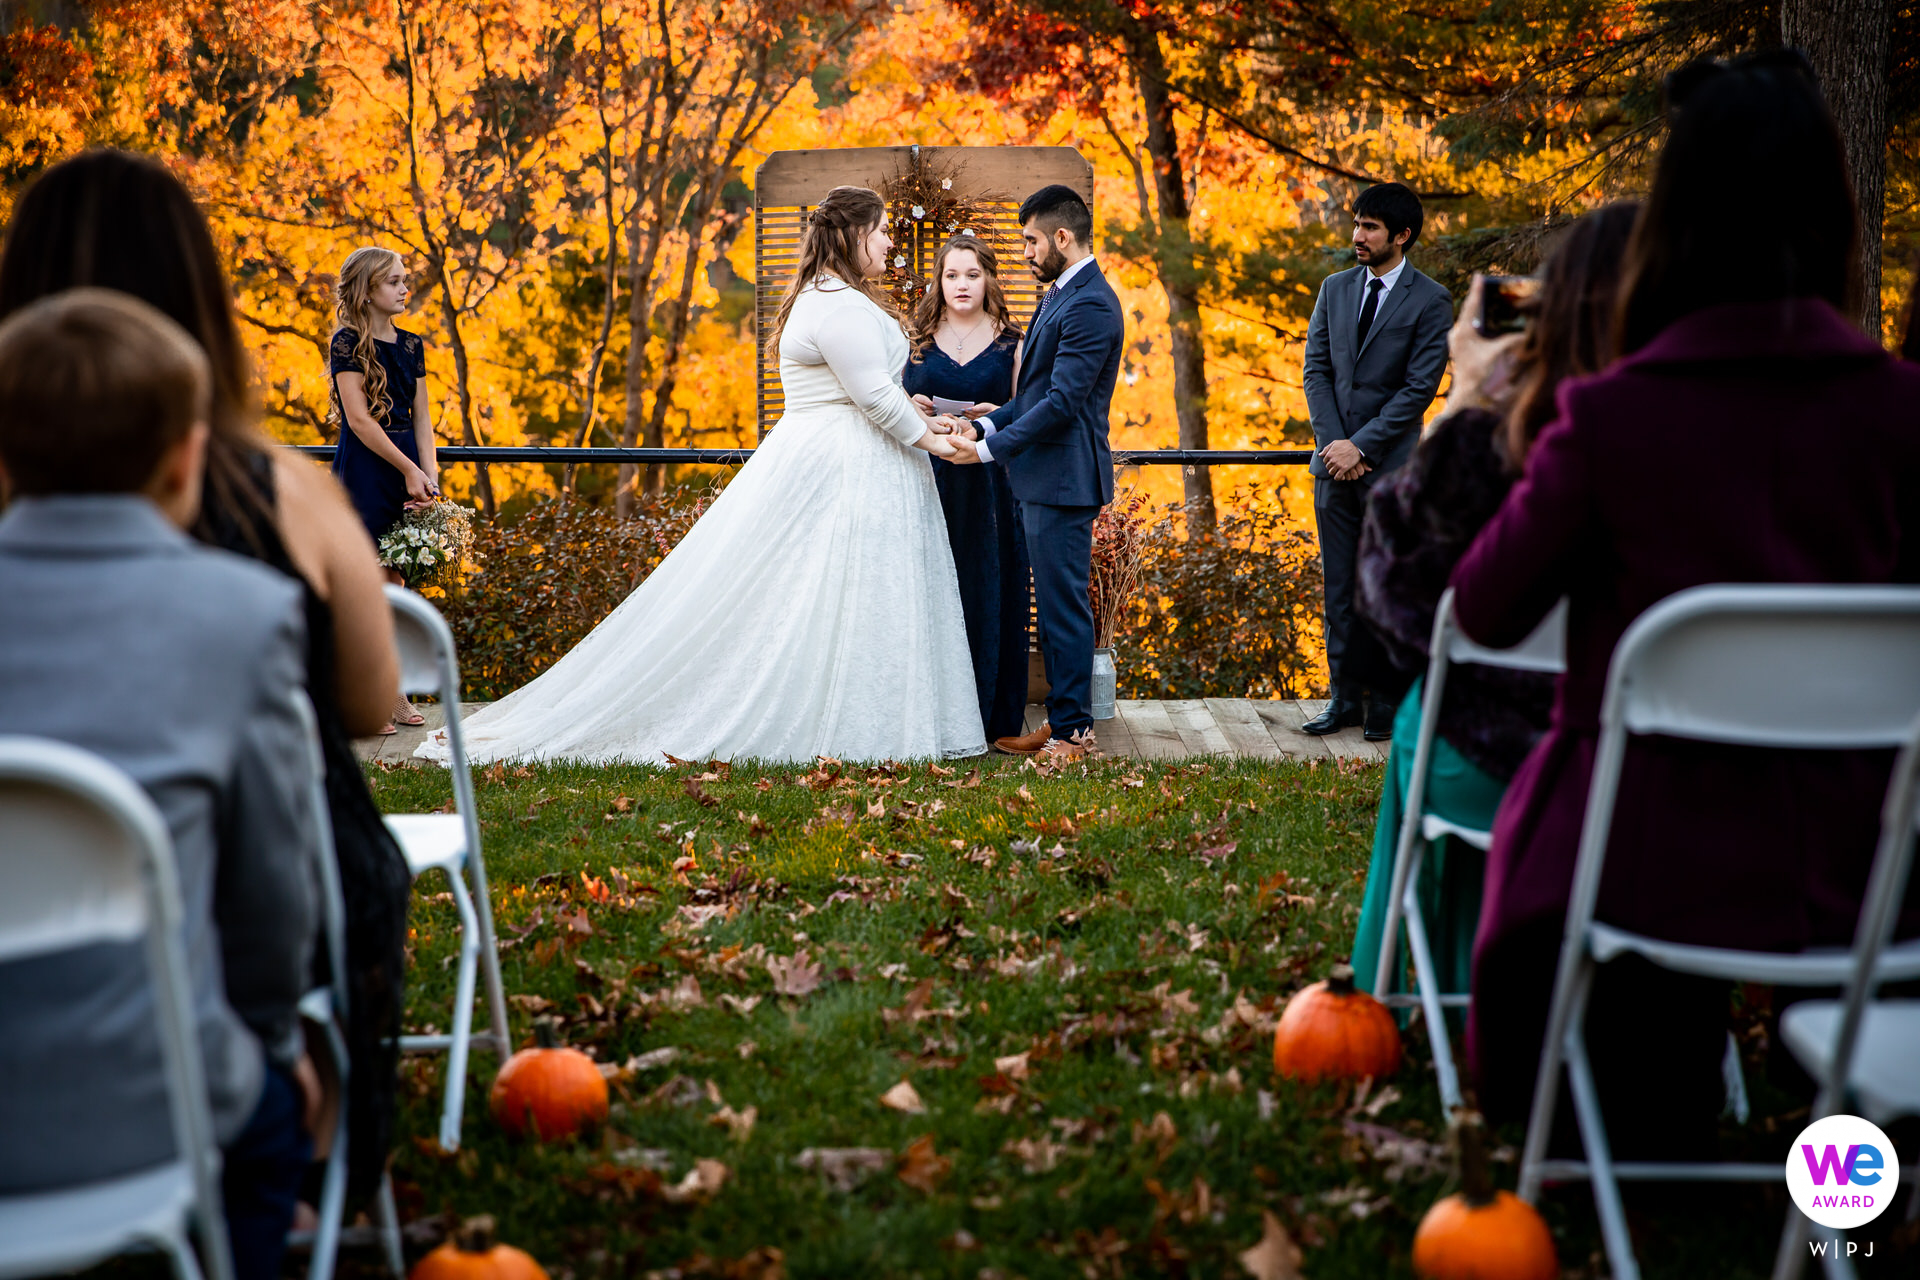 A Fall Wisconsin Elopement Photo From the Outdoor Ceremony   The small wedding guest list was narrowed down to just the bride, groom and about 20 closest guests which was perfect.